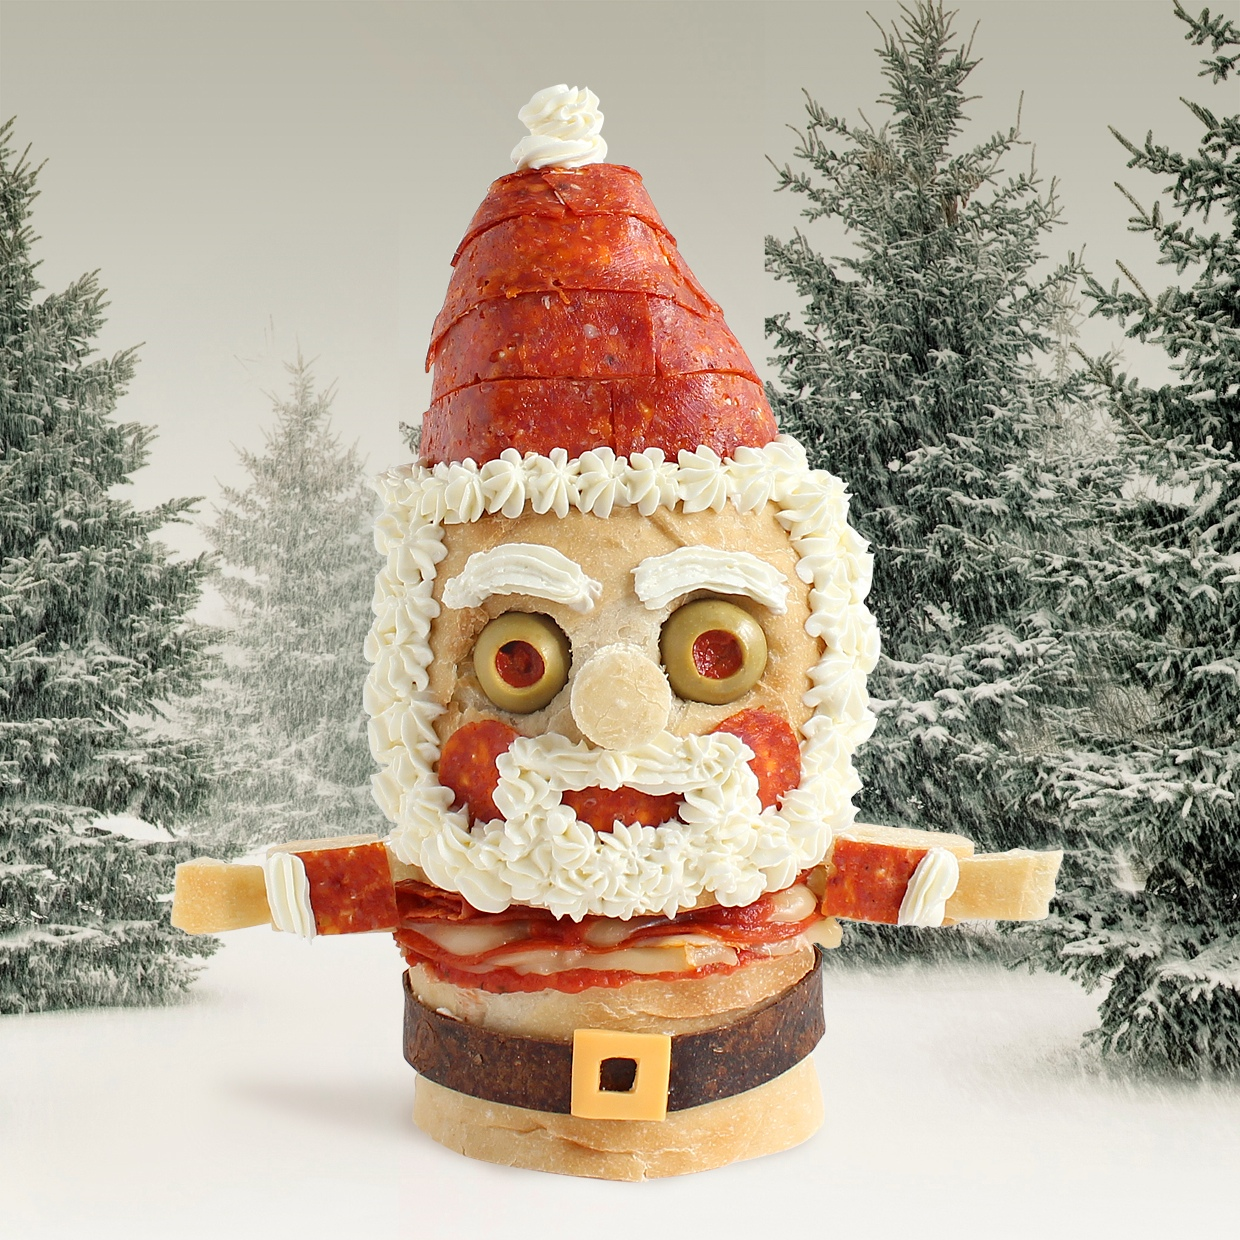 Let us bring some creepy, Christmas joy your way with some monsters ...